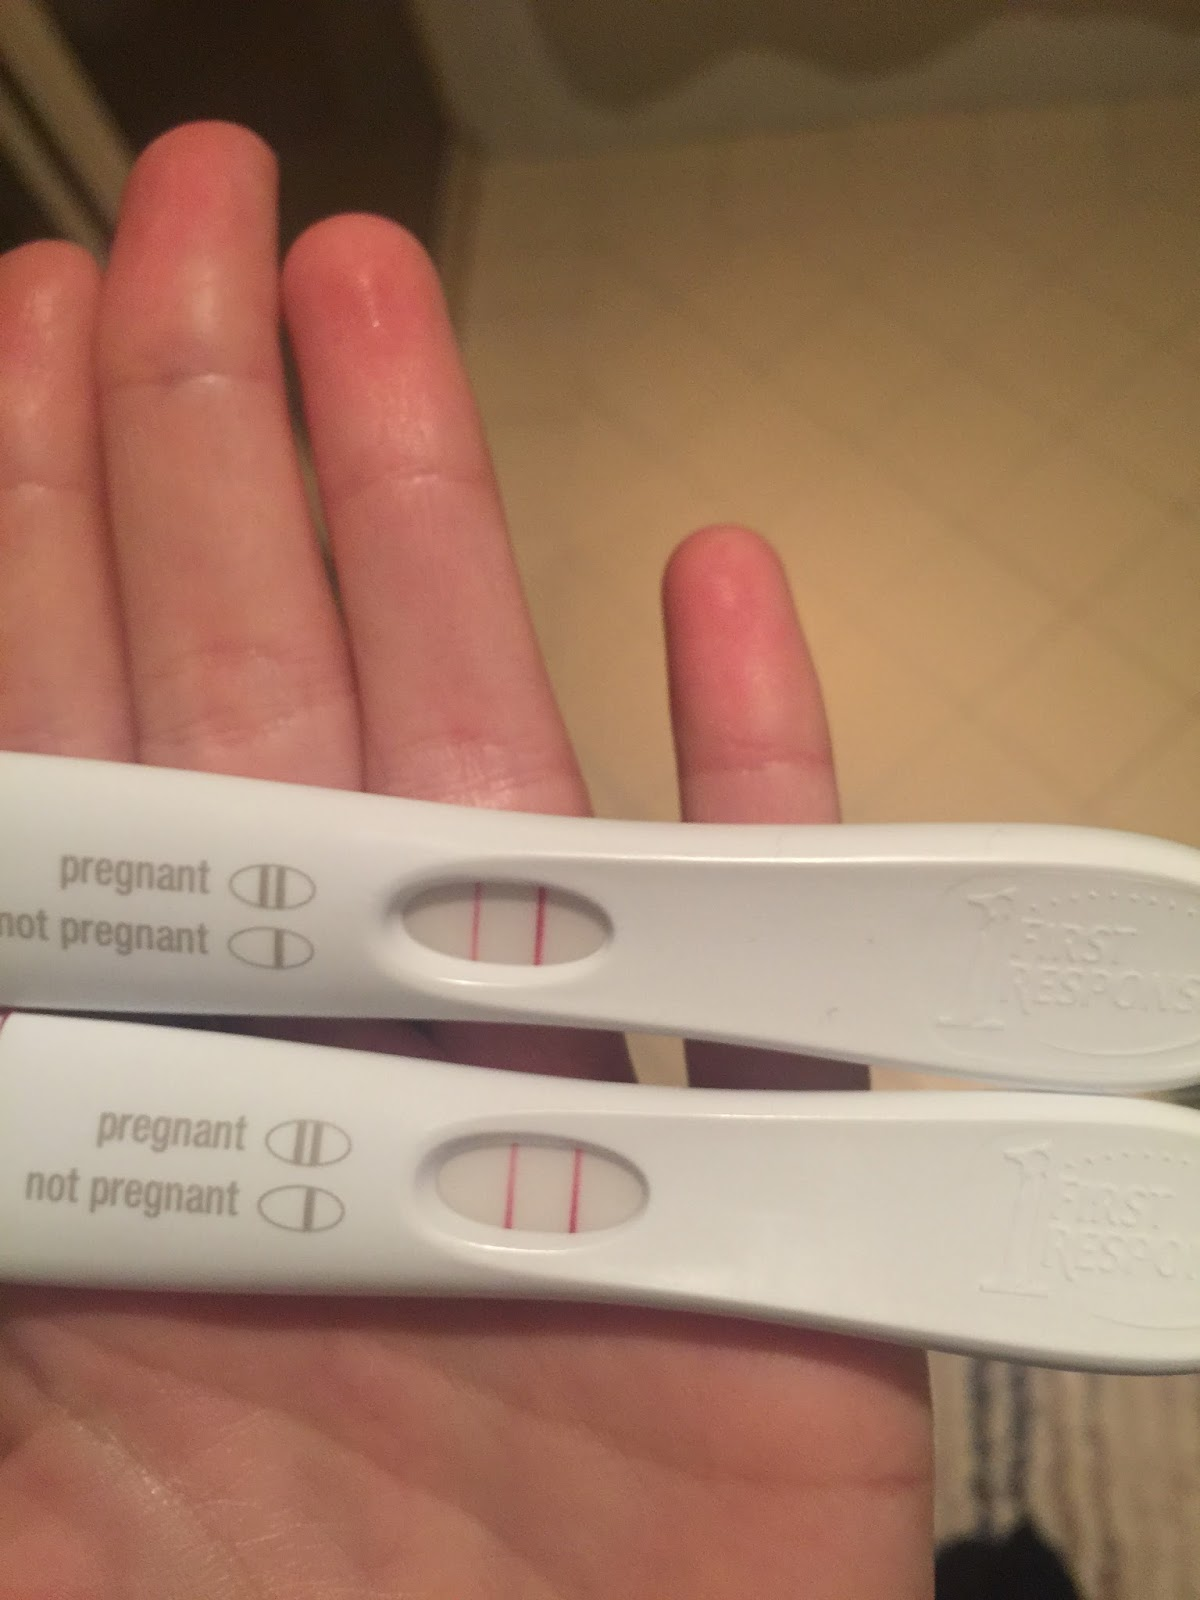 boots home pregnancy test instructions